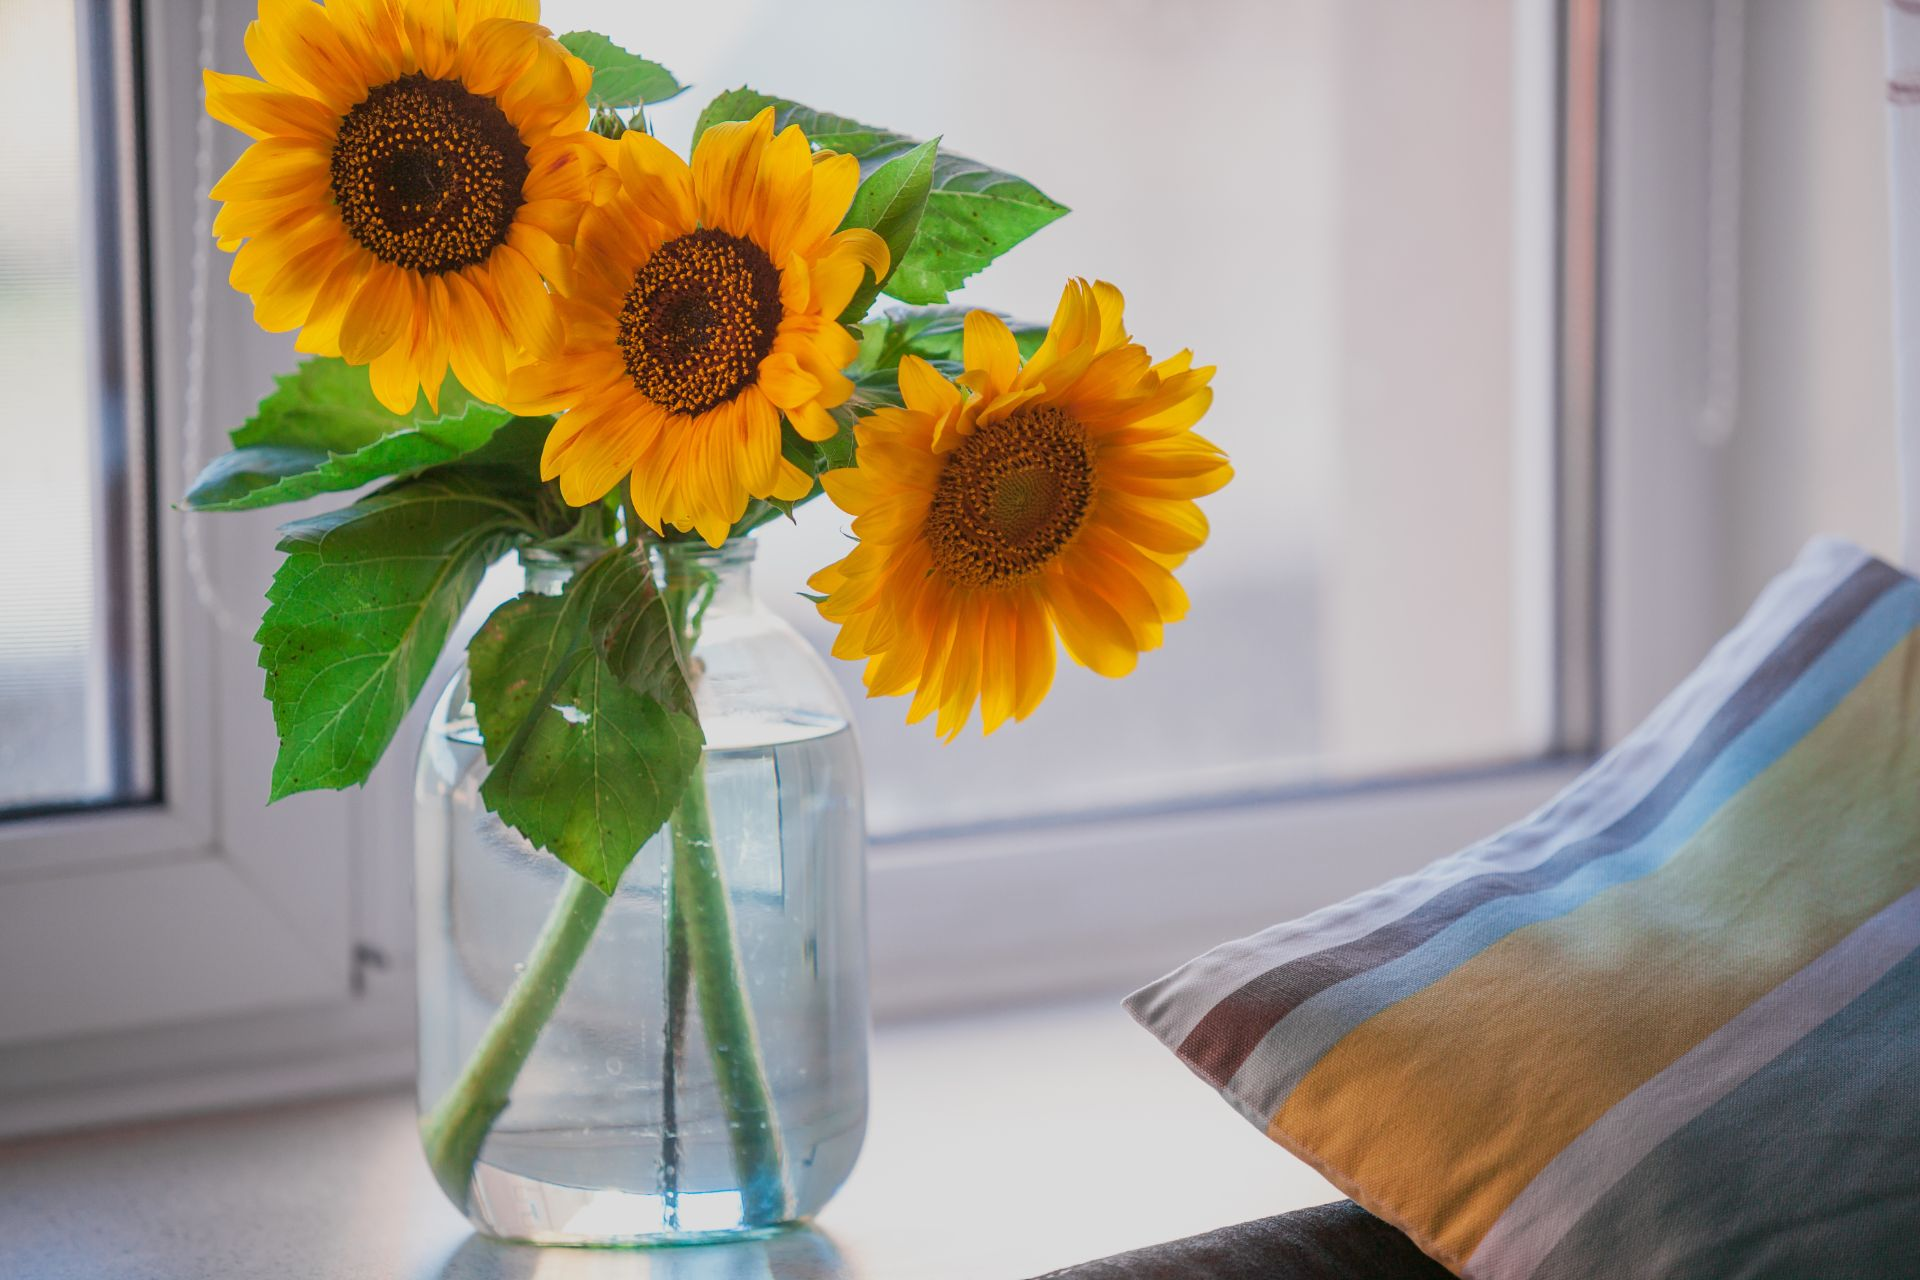 Quick, simple steps for transforming shame associated with overcoming childhood sexual, emotional and physical abuse. Featured image shows a glass vase with three sunflowers sitting on a windowsill next to a striped pillow.